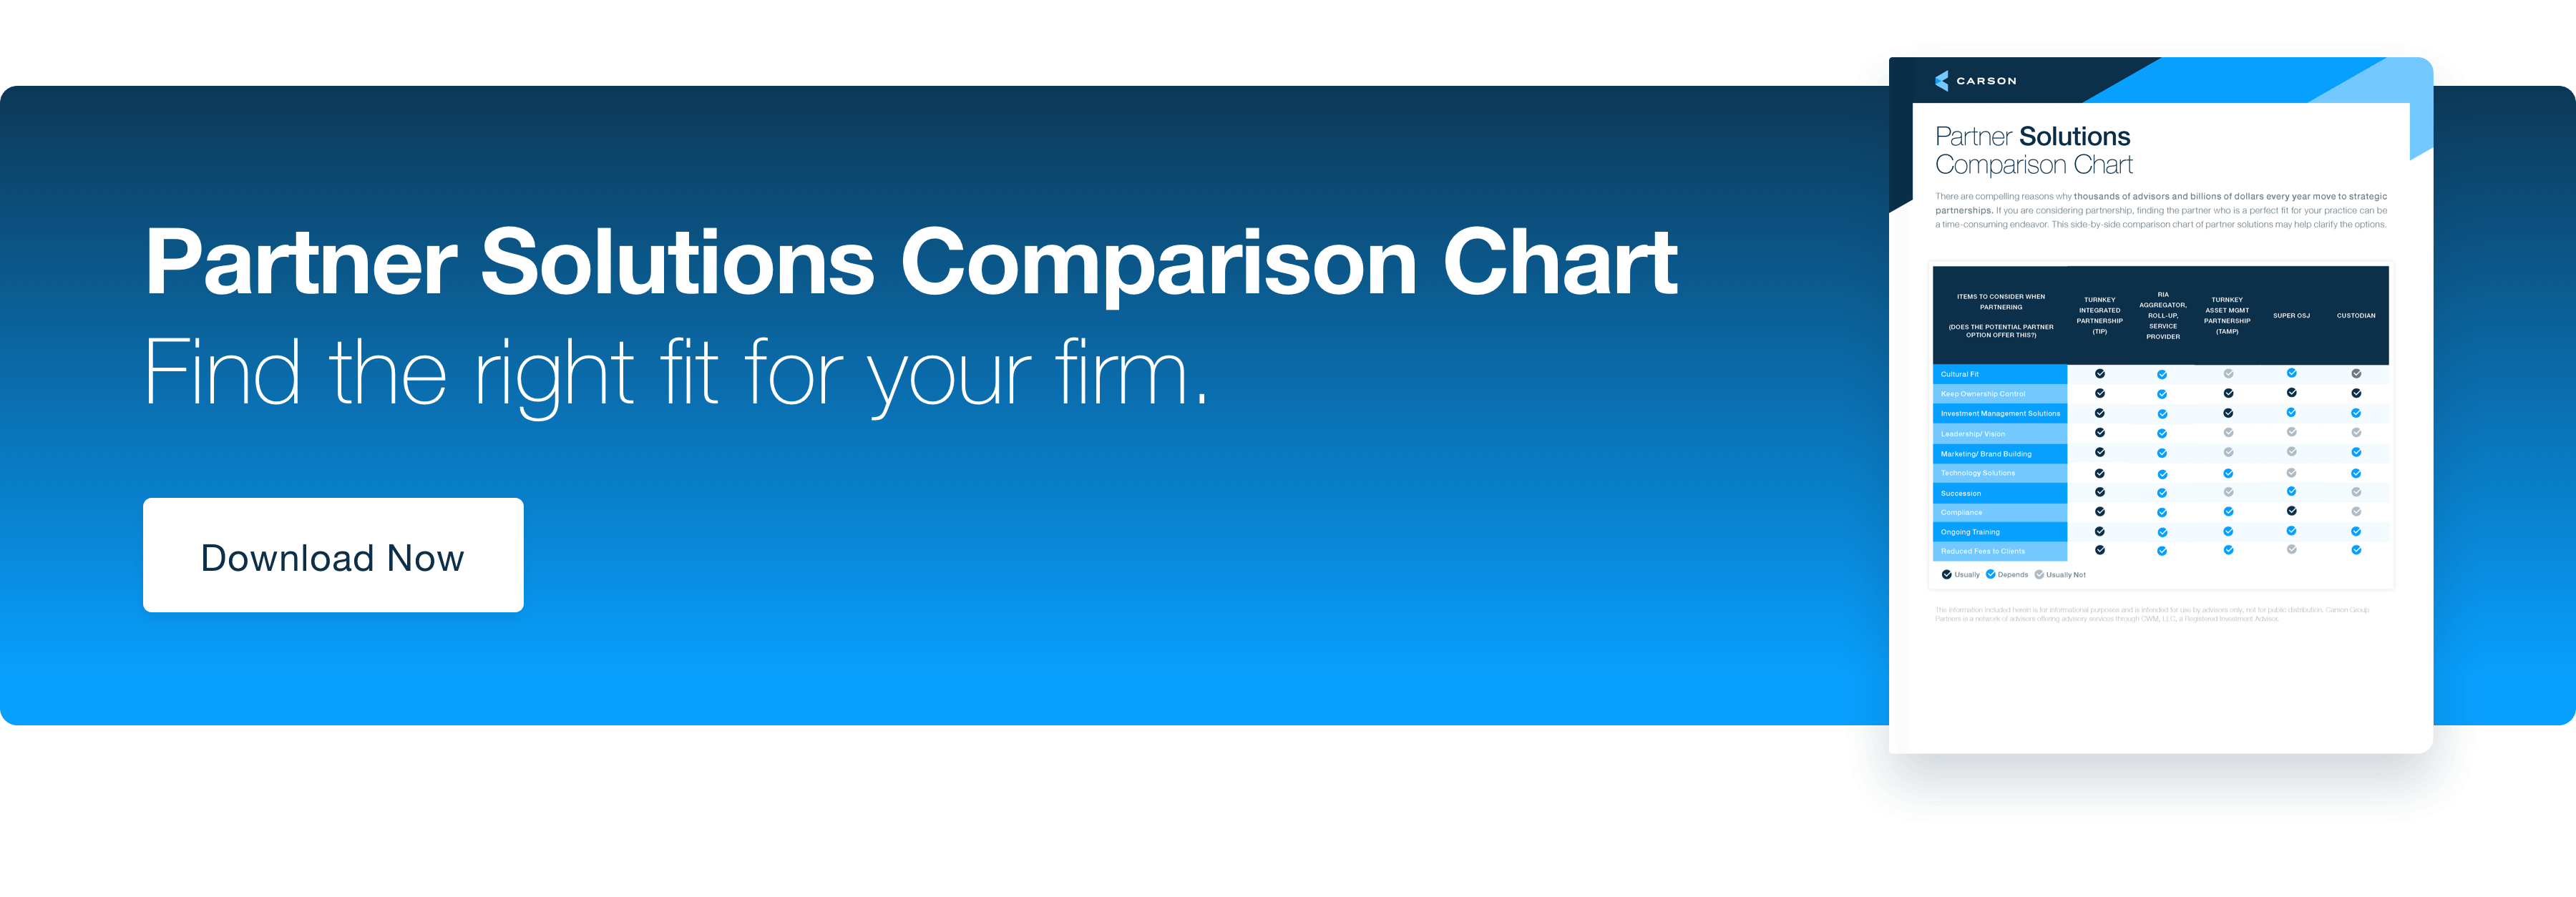 Partner Solutions Comparison Chart. Find the right fit form your firm. Download Now.